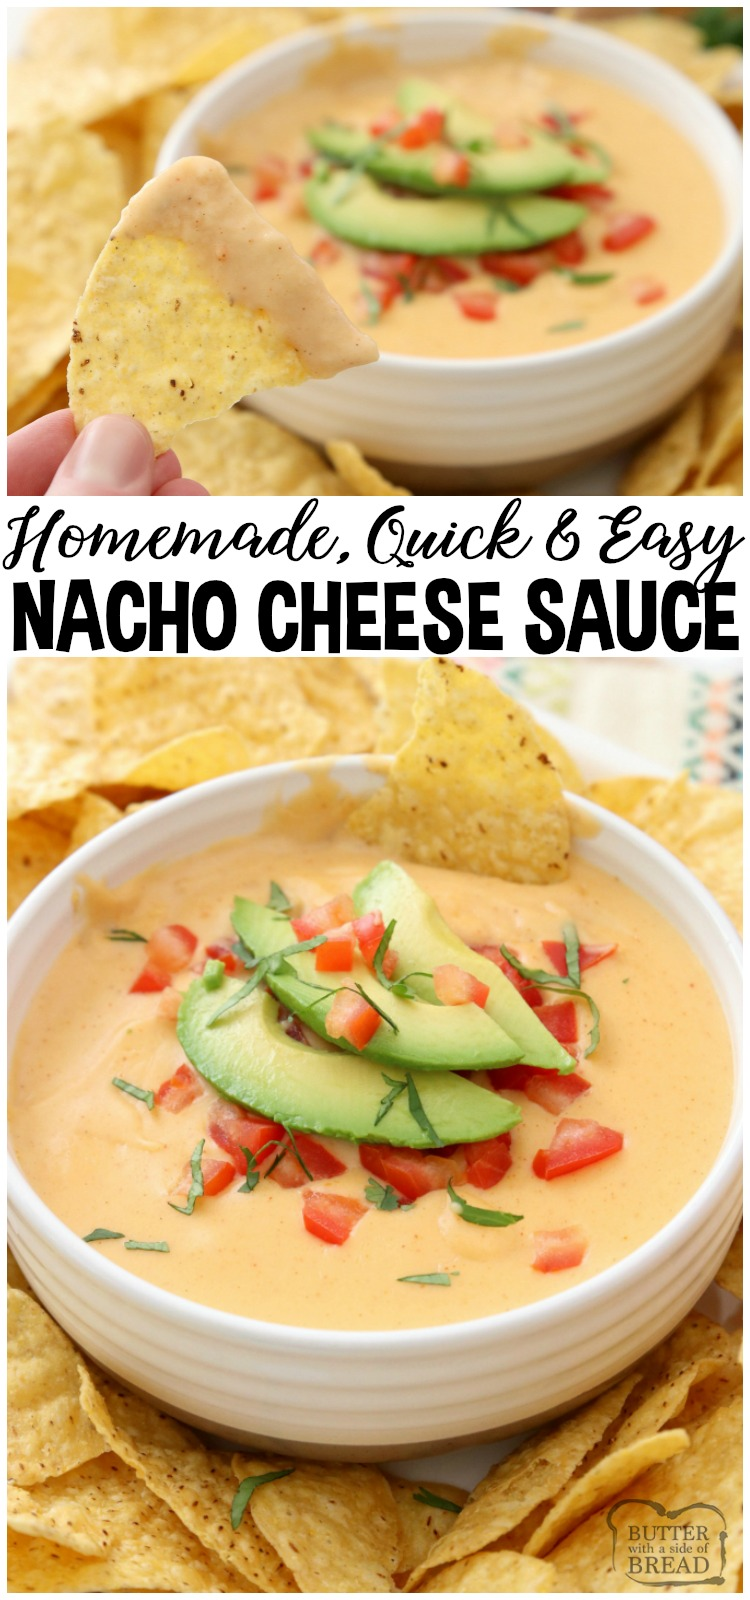 Easy Nacho Cheese sauce recipe with only 4 ingredients and is made in minutes! Smooth, creamy with great nacho cheese flavor, this recipe is perfect for parties, busy weeknight dinners and game day food! #nacho #cheese #homemade #nachos #recipe #appetizer #gameday #partyfood from BUTTER WITH A SIDE OF BREAD